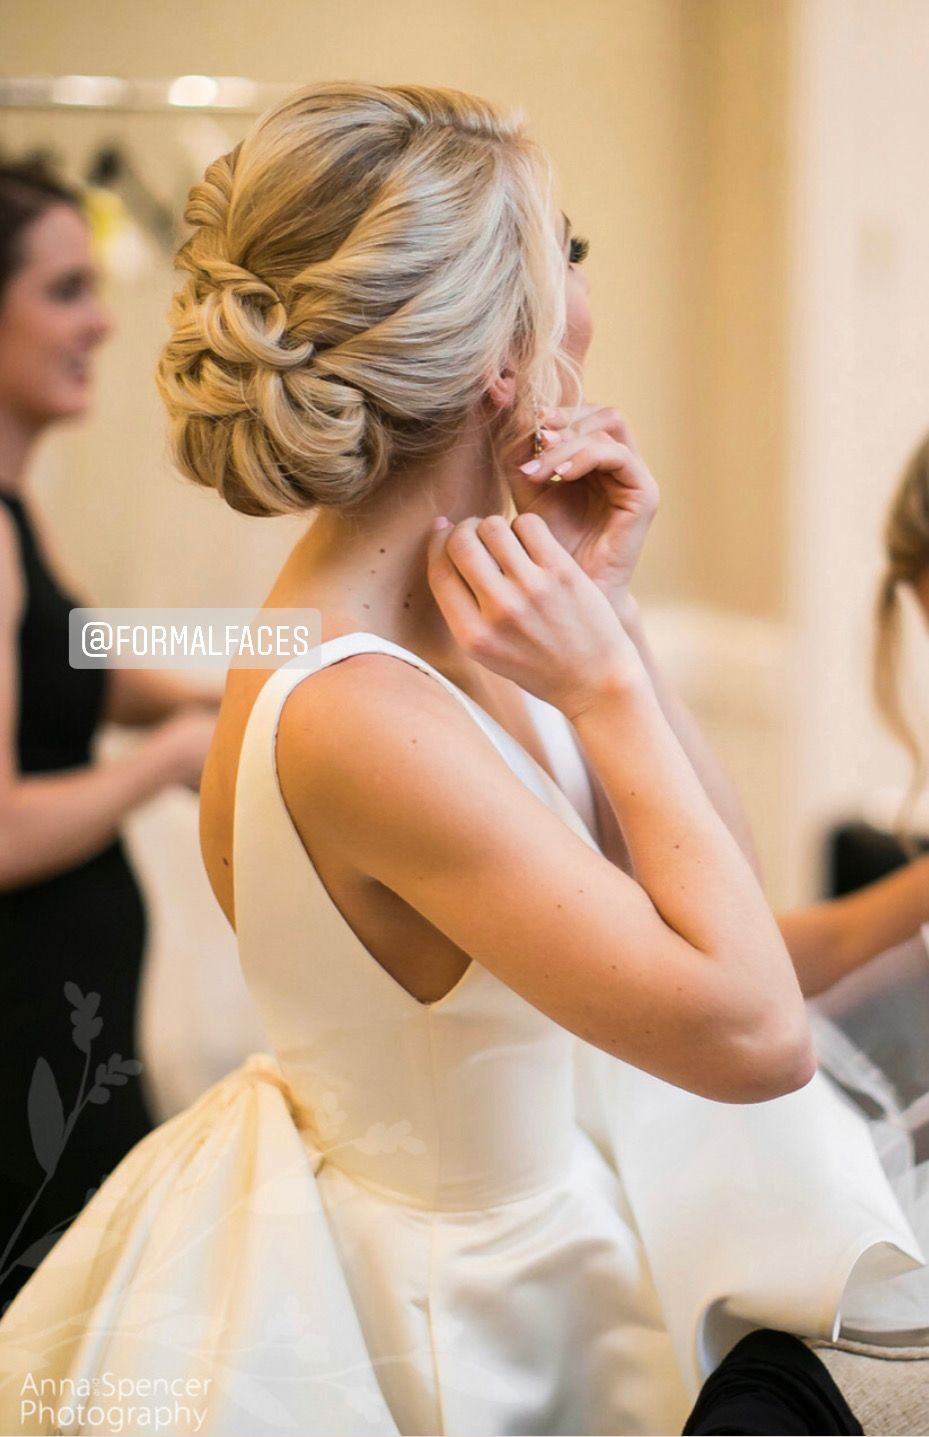 Pin by Formal Faces on Up Do's Headbands, Fashion